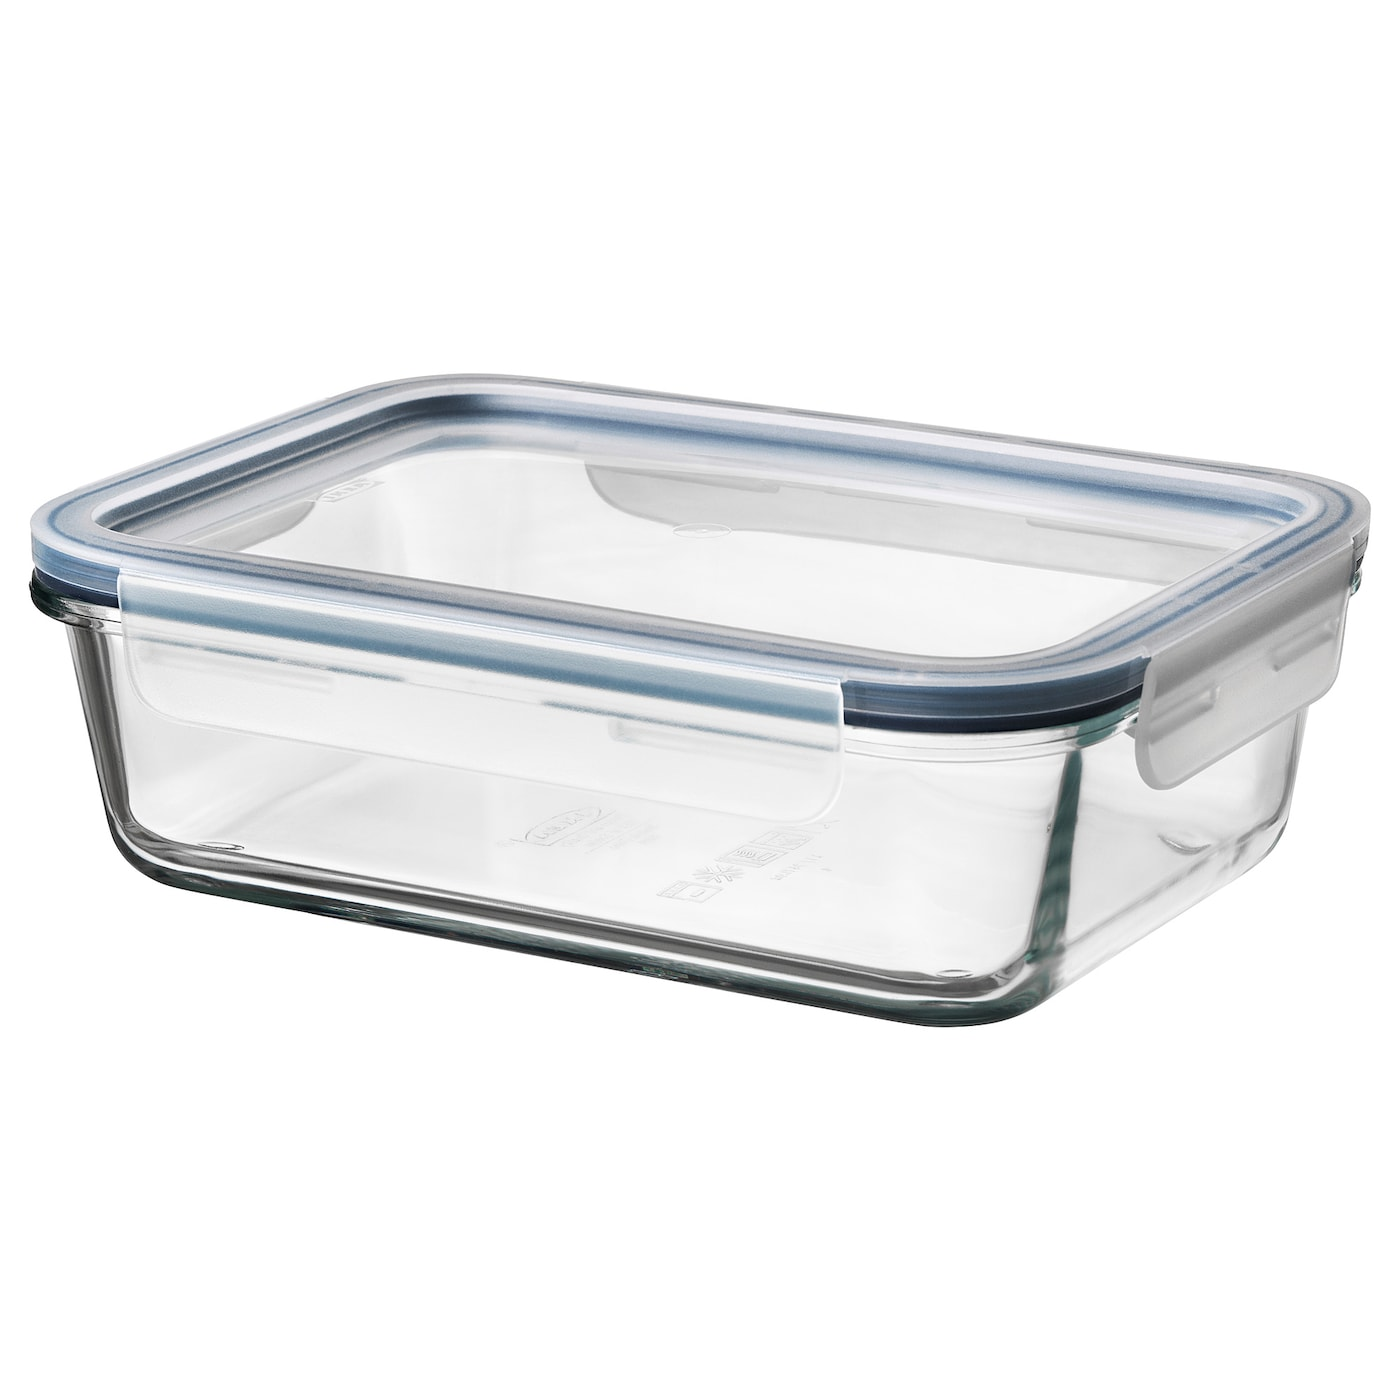 Ikea 365 Food Container With Lid